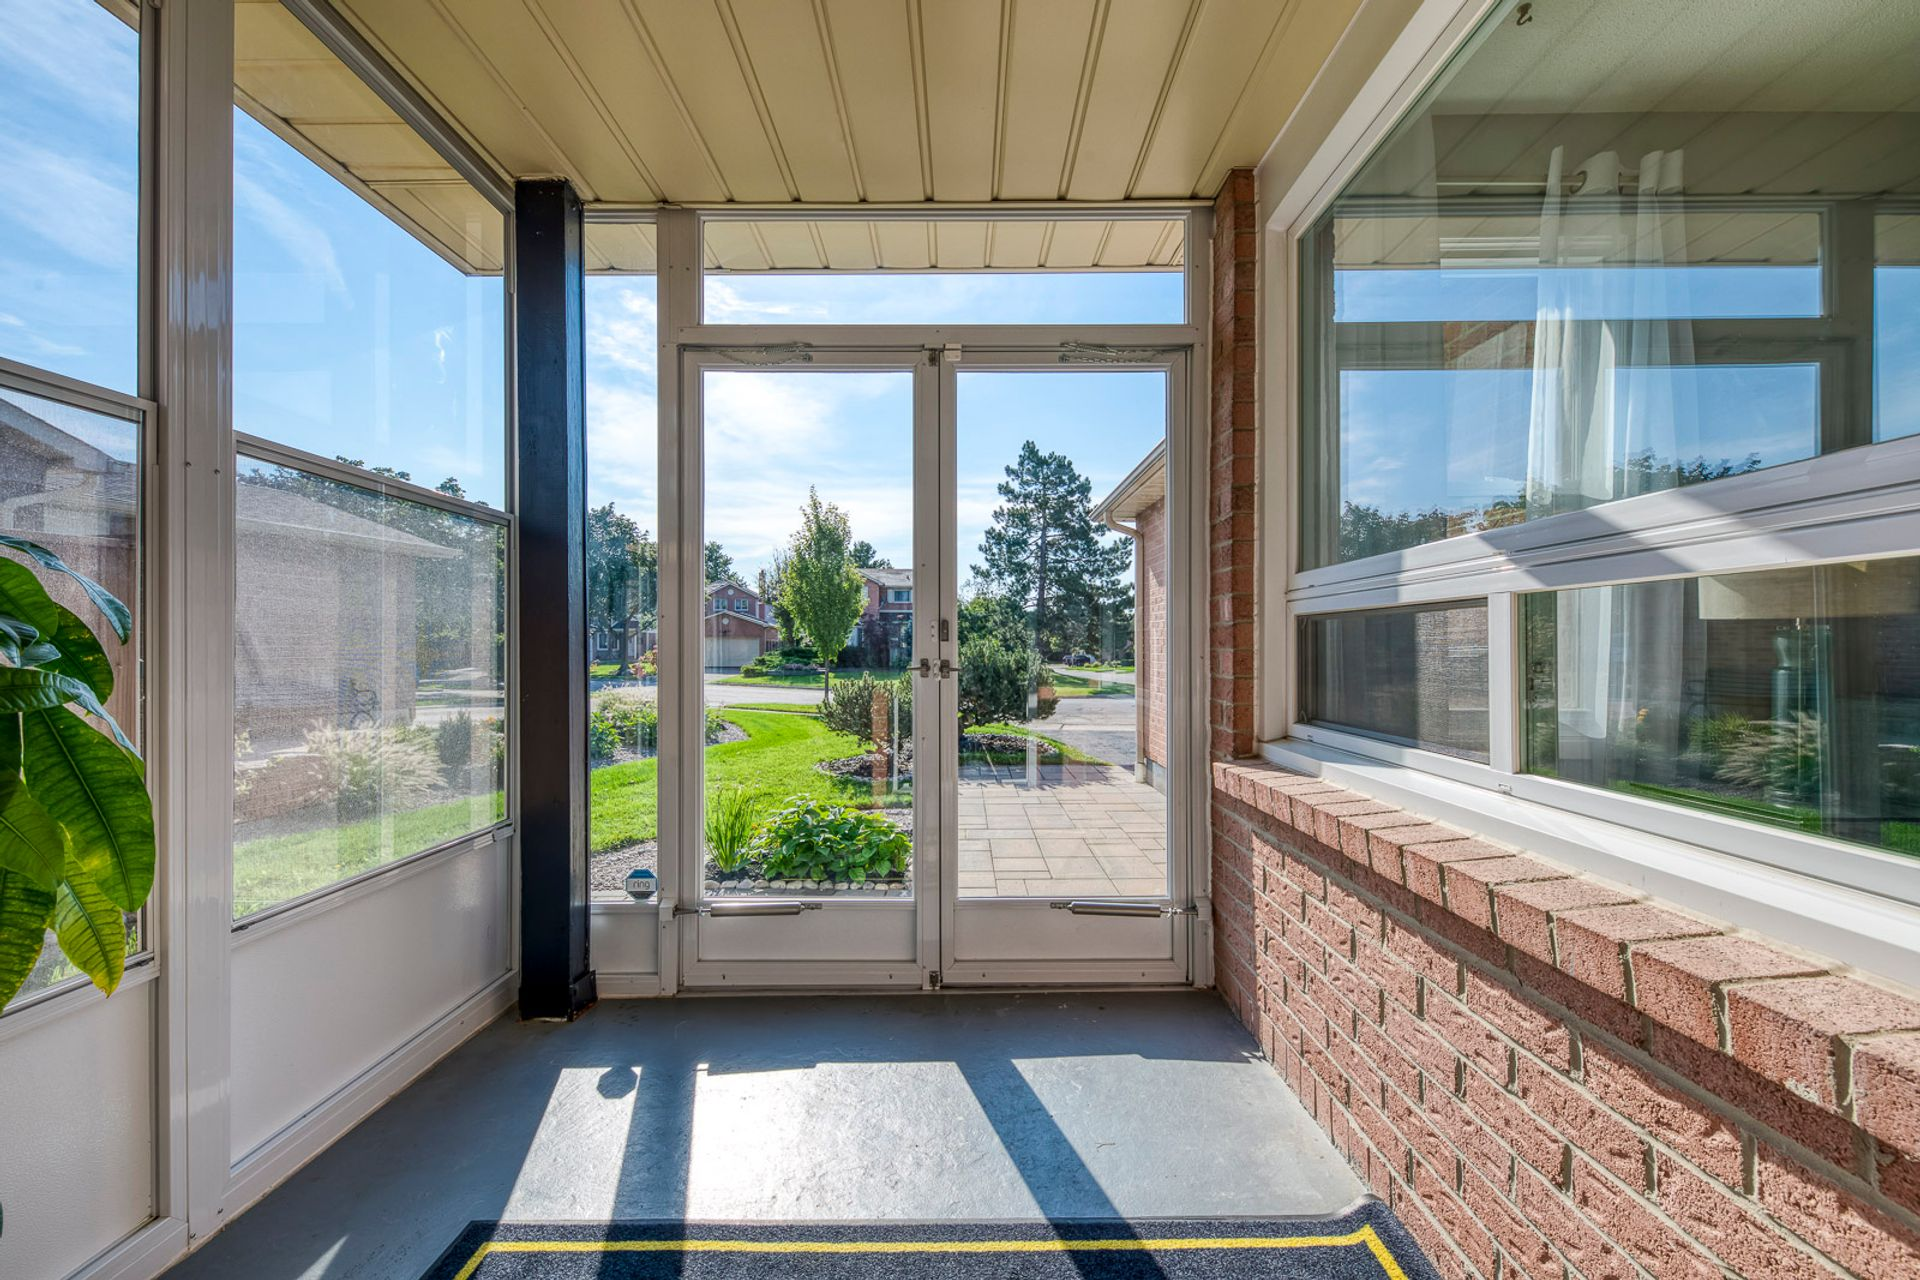 Porch - 6278 Lavery Crt, Mississauga - Elite3 & Team at 6278 Lavery Court, Meadowvale, Mississauga